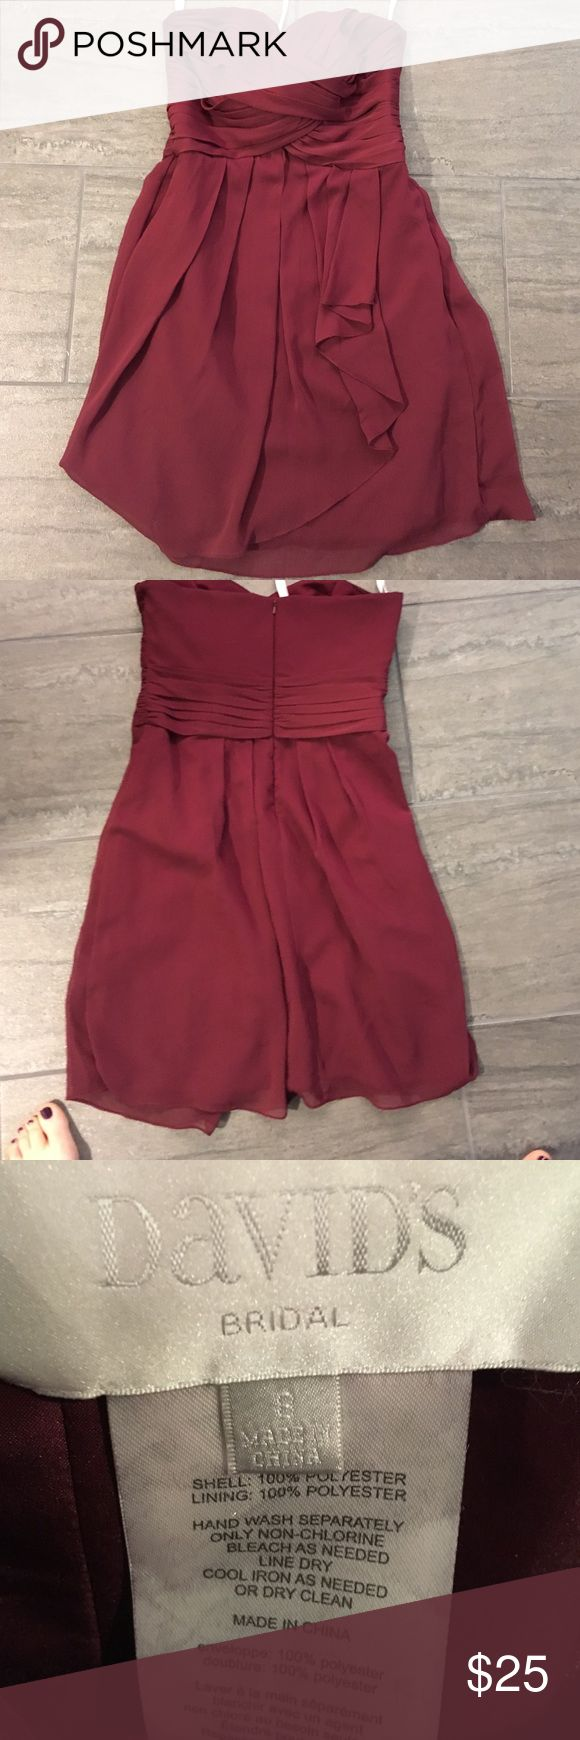 David's Bridal Short Crinkle Chiffon Dress Wine colored Davids Bridal Bridesmaid dress size 8. Worn once. The little class on the back that gives an extra clasp that is near the zipper to give extra security is loose & needs a stitch in it. Not required but nice to have if you are squeezing into it like I was just after having a baby. No malfunctions for me! Lol Davids Bridal Dresses Wedding